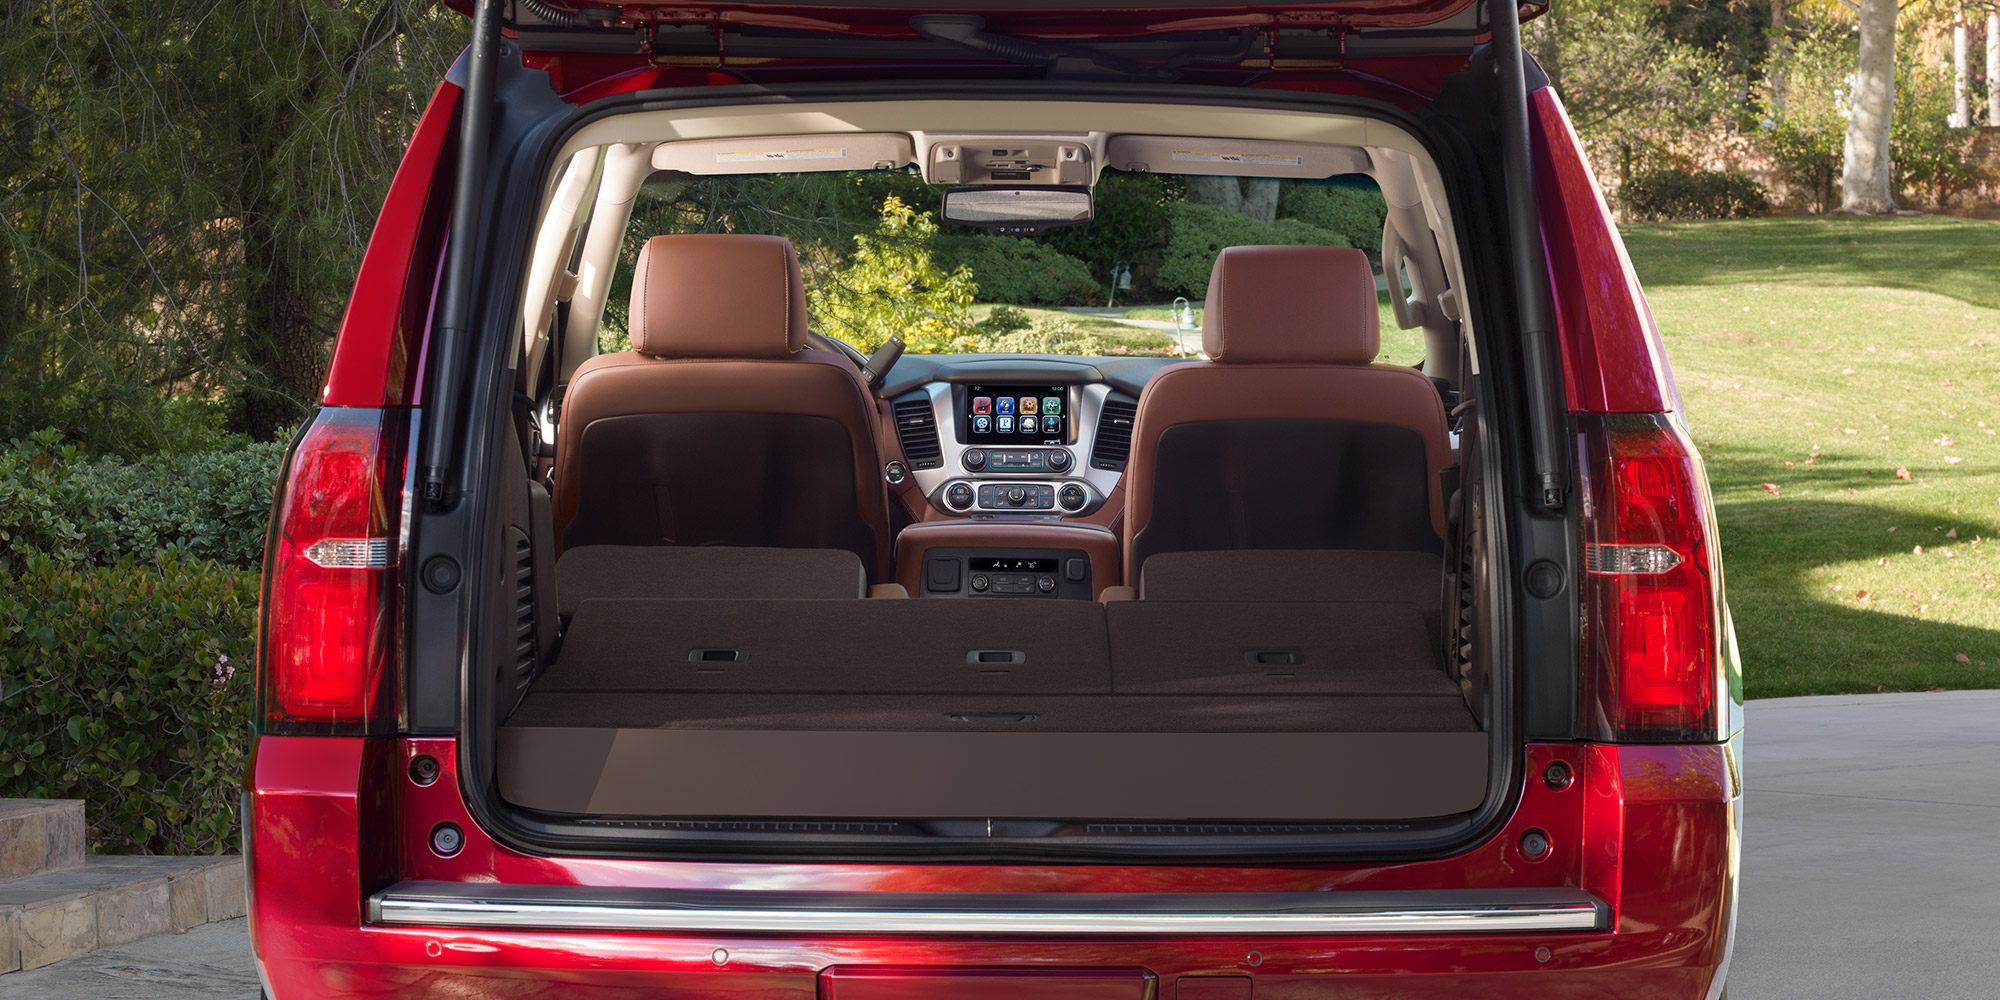 Spacious Interior of the 2018 Tahoe